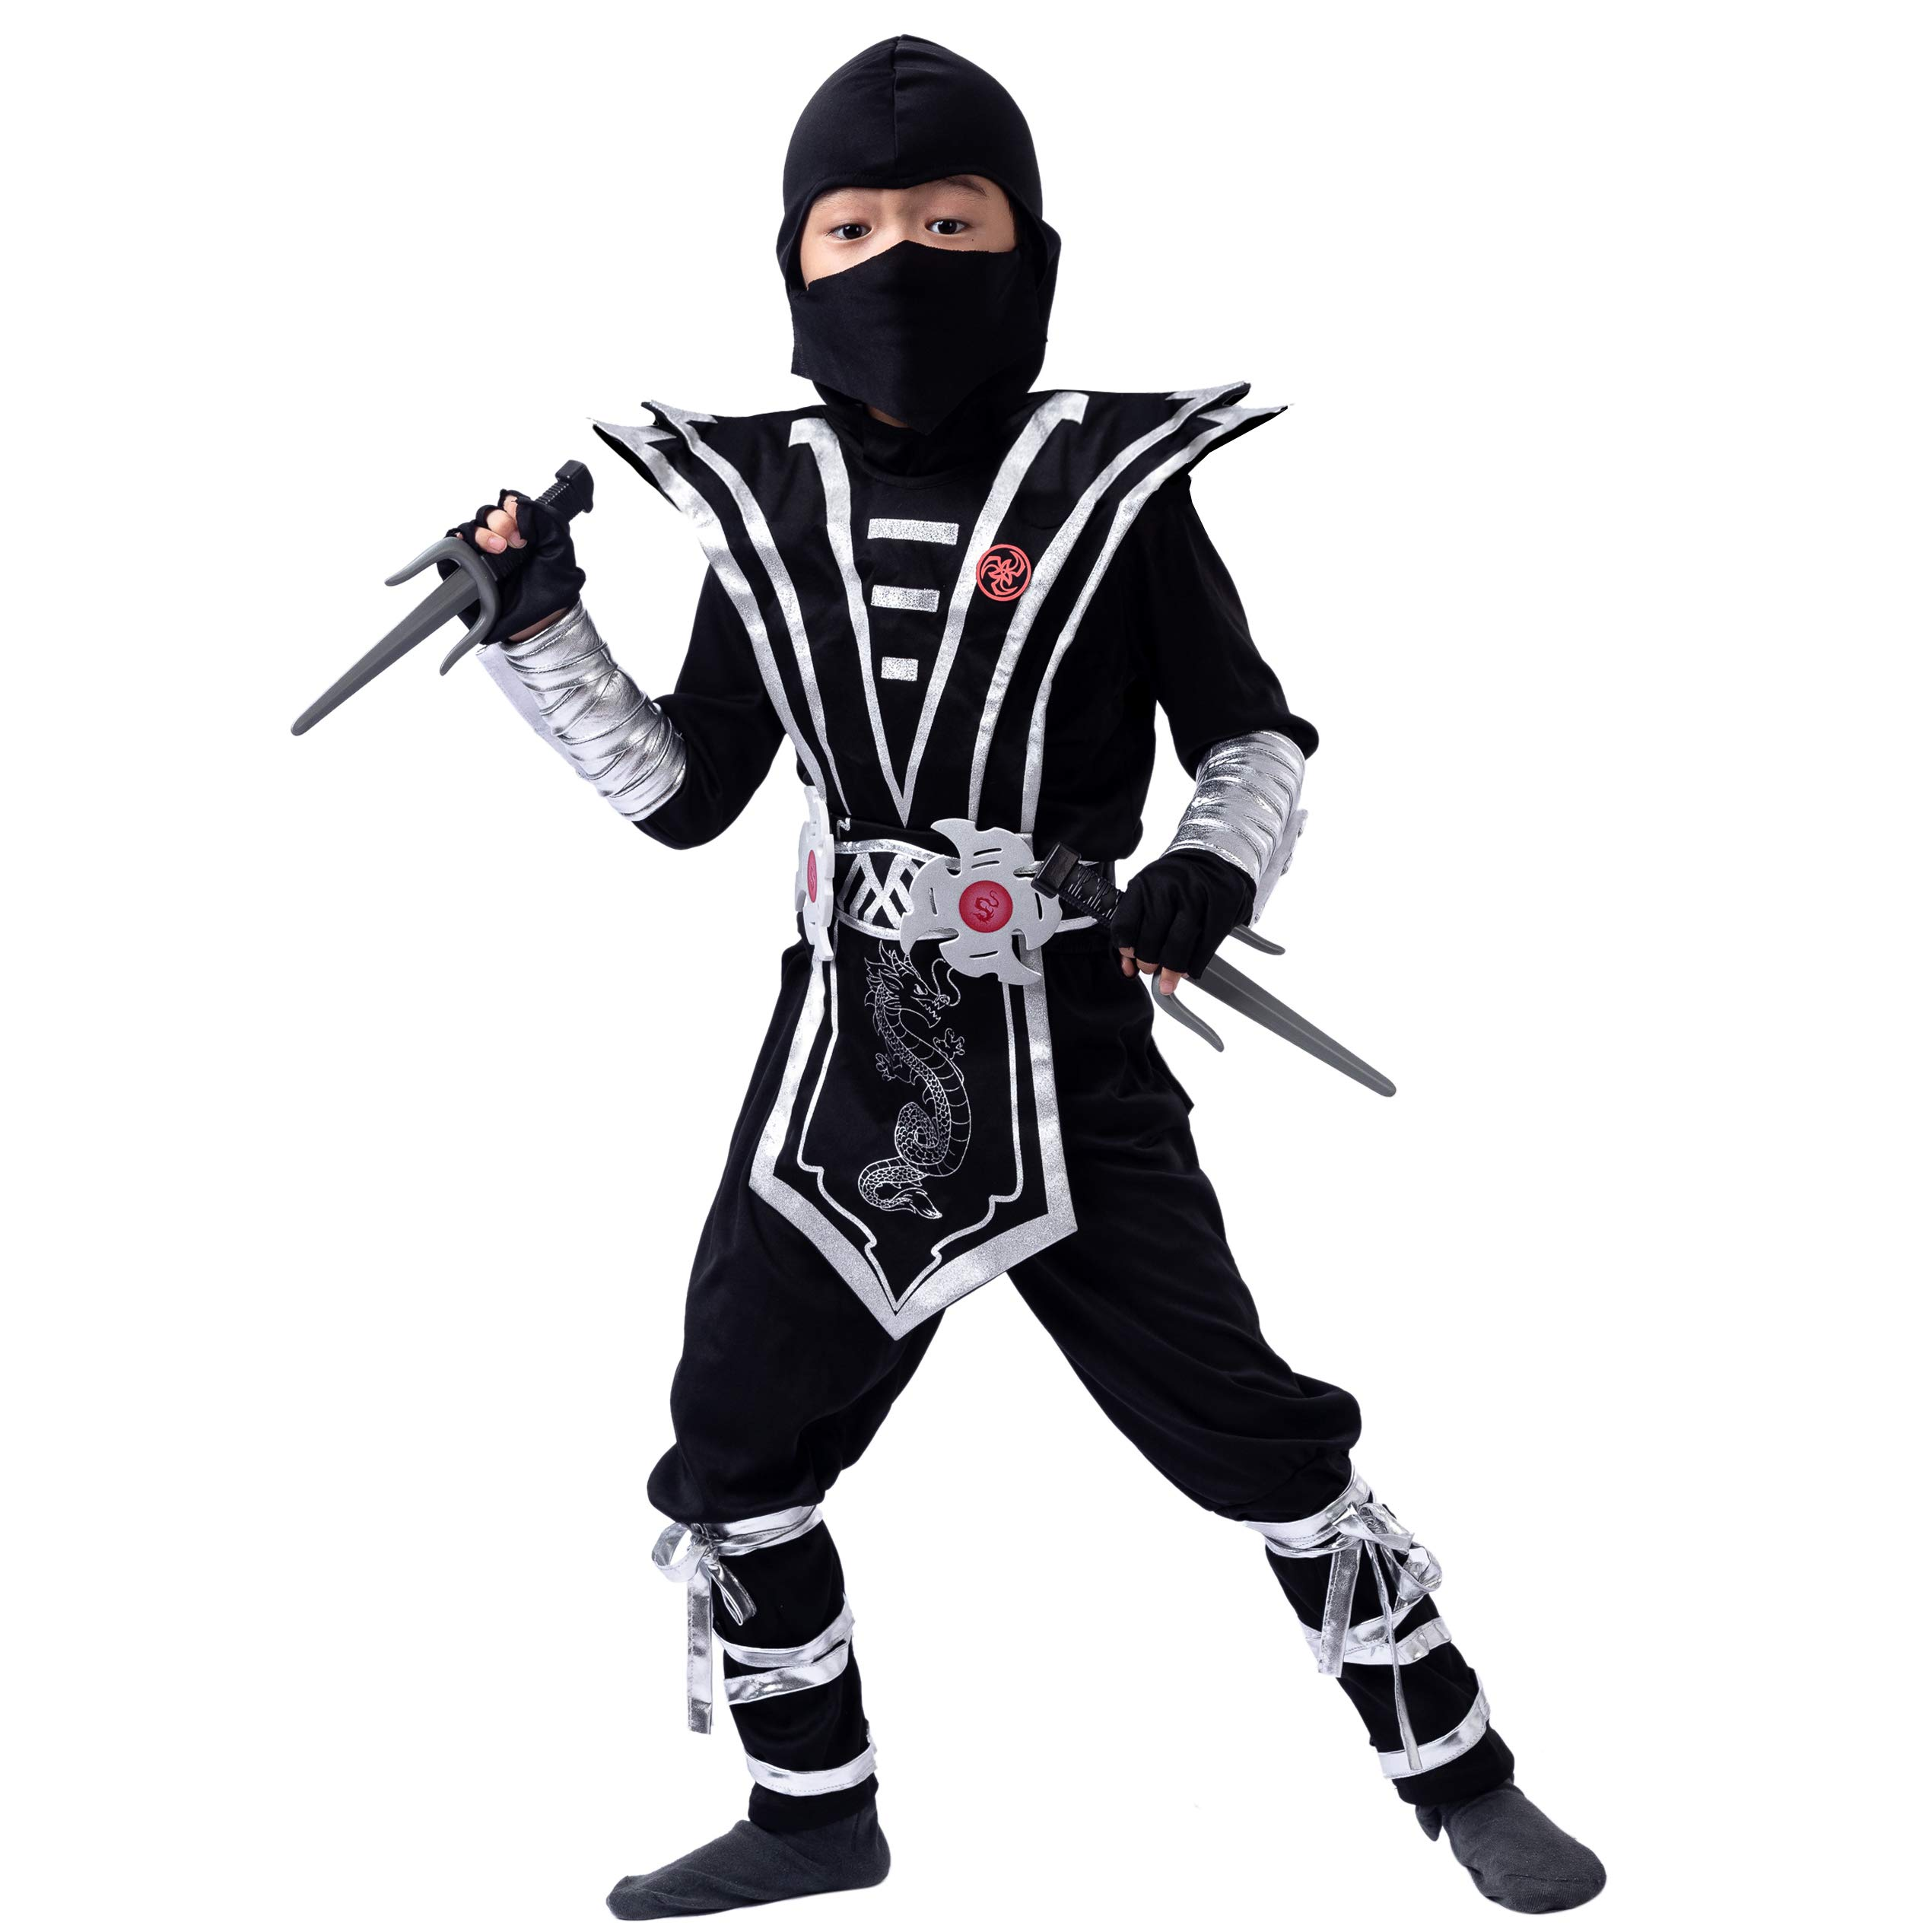 Silver Ninja Deluxe Costume Set with Ninja Foam Accessories Toys for Kids Kung Fu Outfit Halloween Ideas